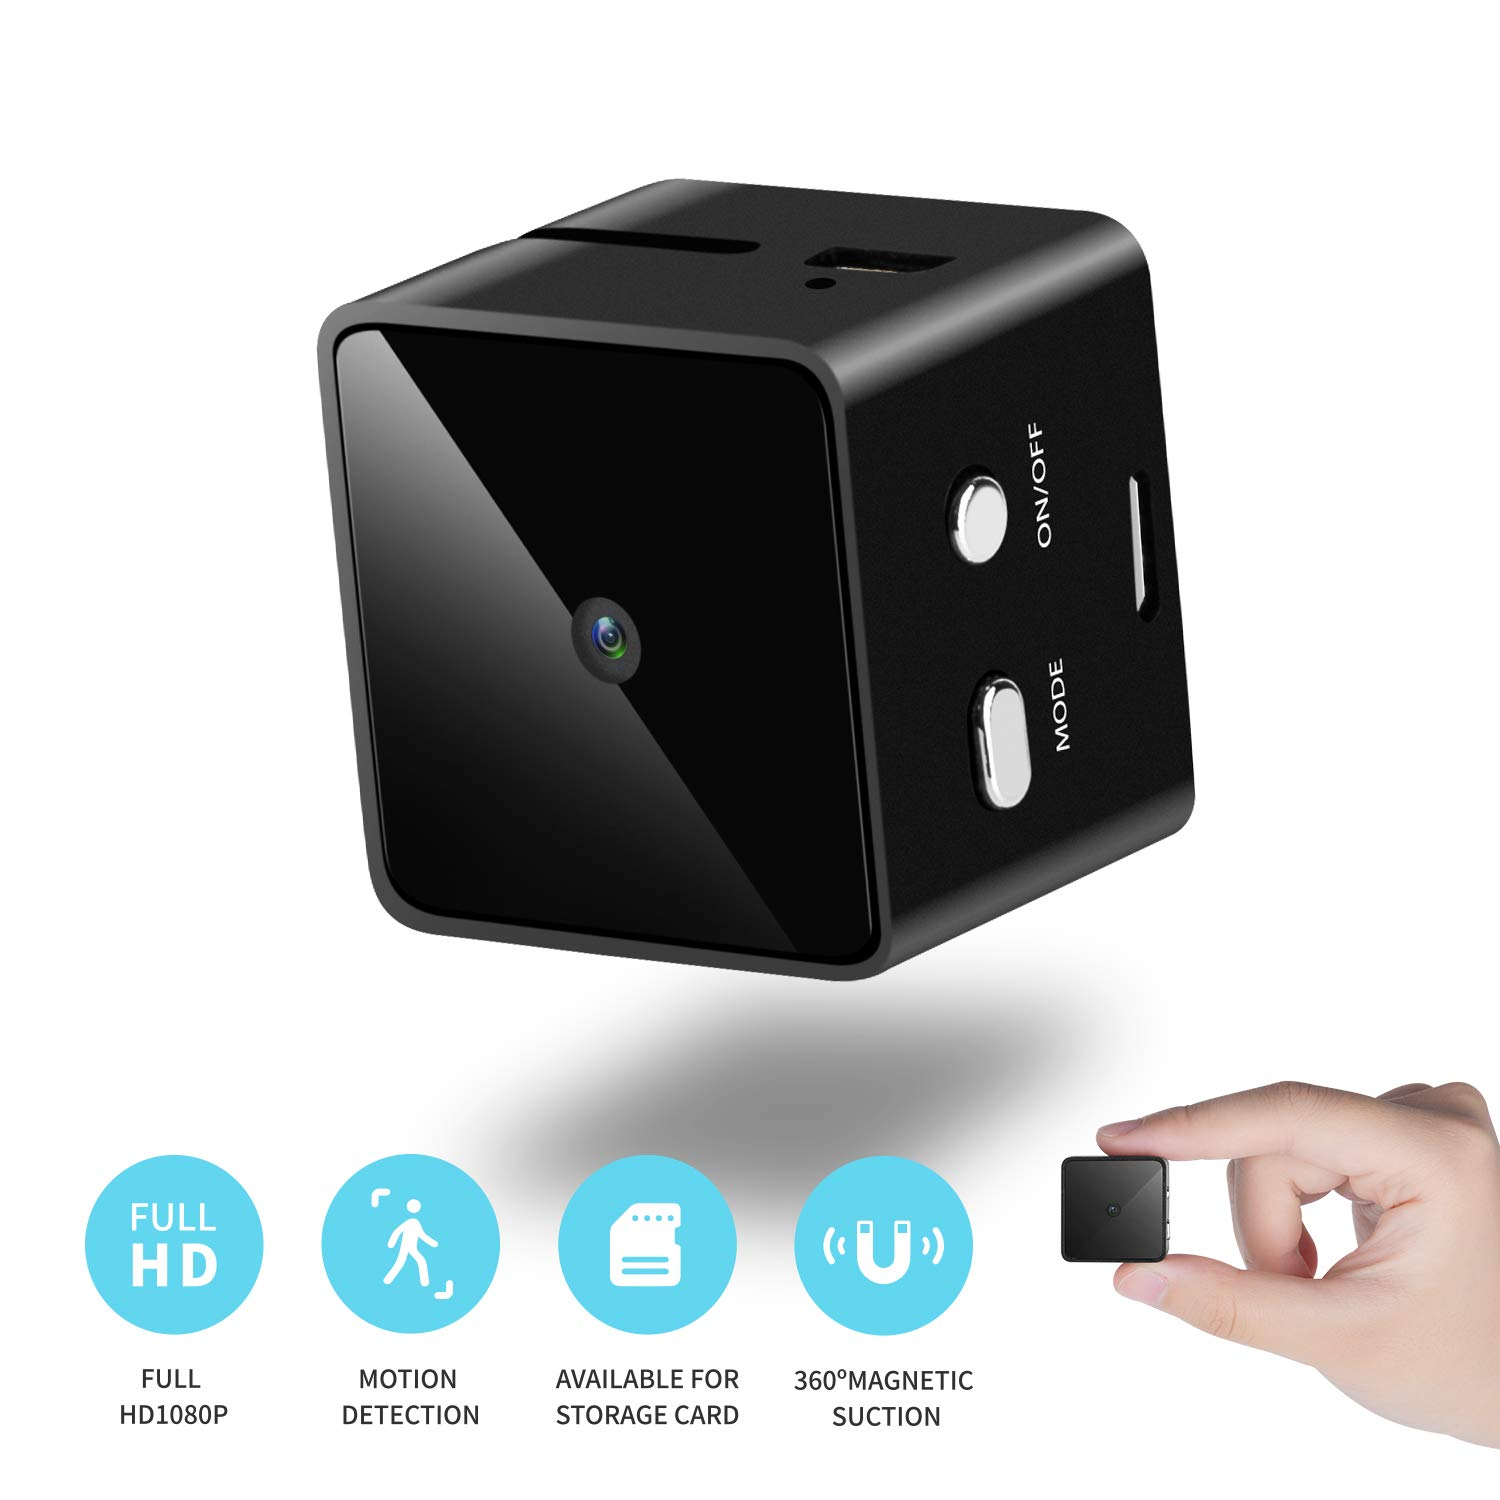 Mini Cube Spy Hidden Camera Full HD 1080P with Motion Detection, Metal Housing Magnetic Body Perfect Video Camera for Indoor/Outdoor Security Nanny Cam - No Wi-Fi Needed - 16G SD Card Included (Black) by Ice Walker